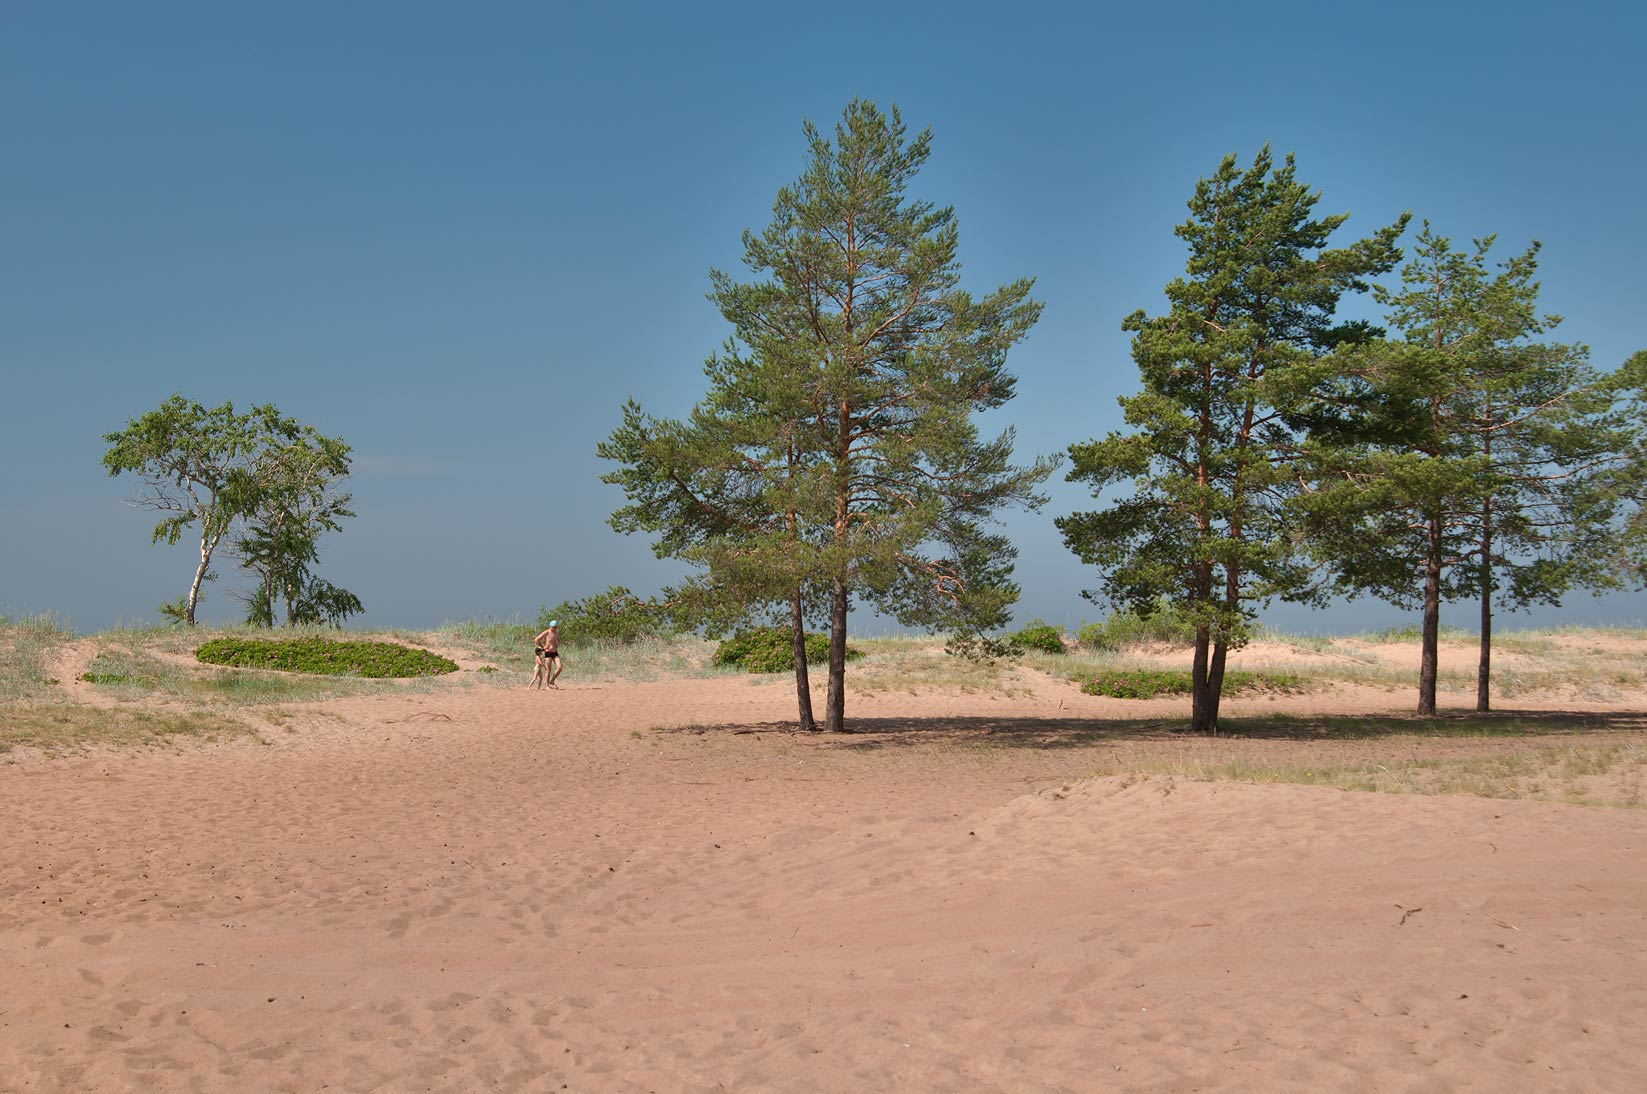 Dunes in Solnechnoe, west from St.Petersburg. Russia